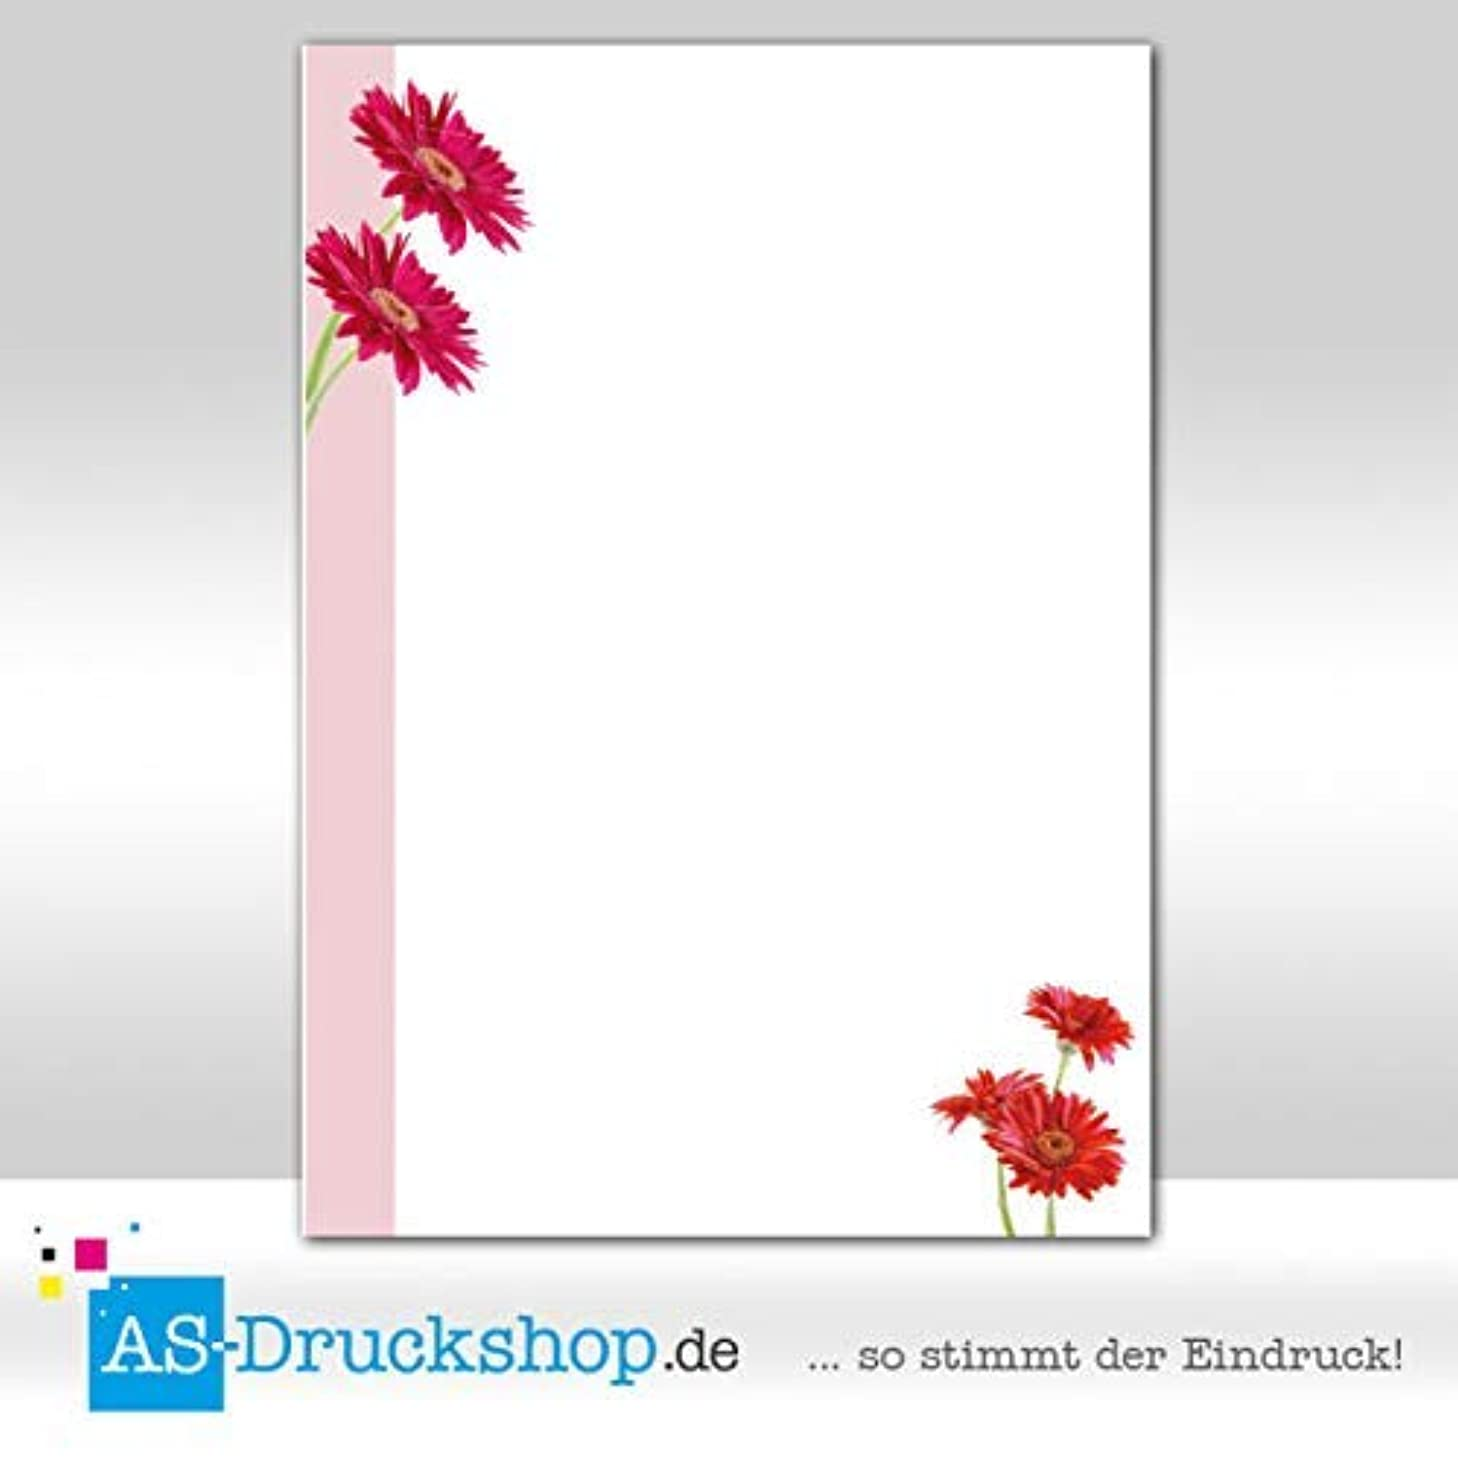 Design Paper Spring Pink Stripes with Red Flowers 100 Sheets DIN A5 90 g Offset Paper